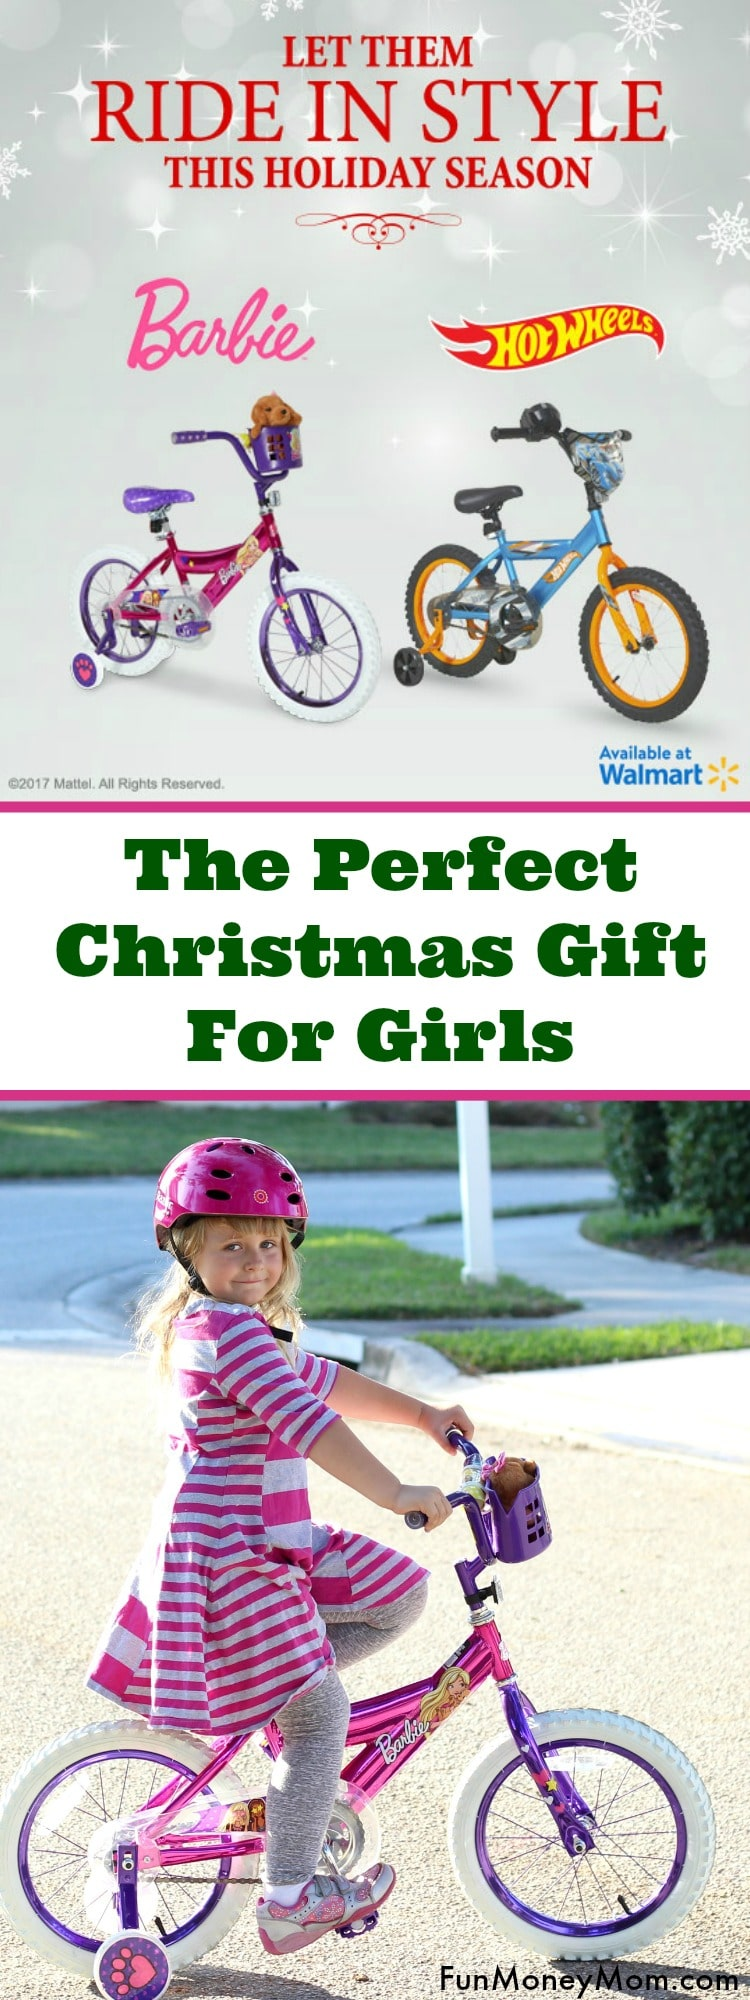 Looking for the perfect Christmas gift for girls? This is the one holiday present that goes out of style!